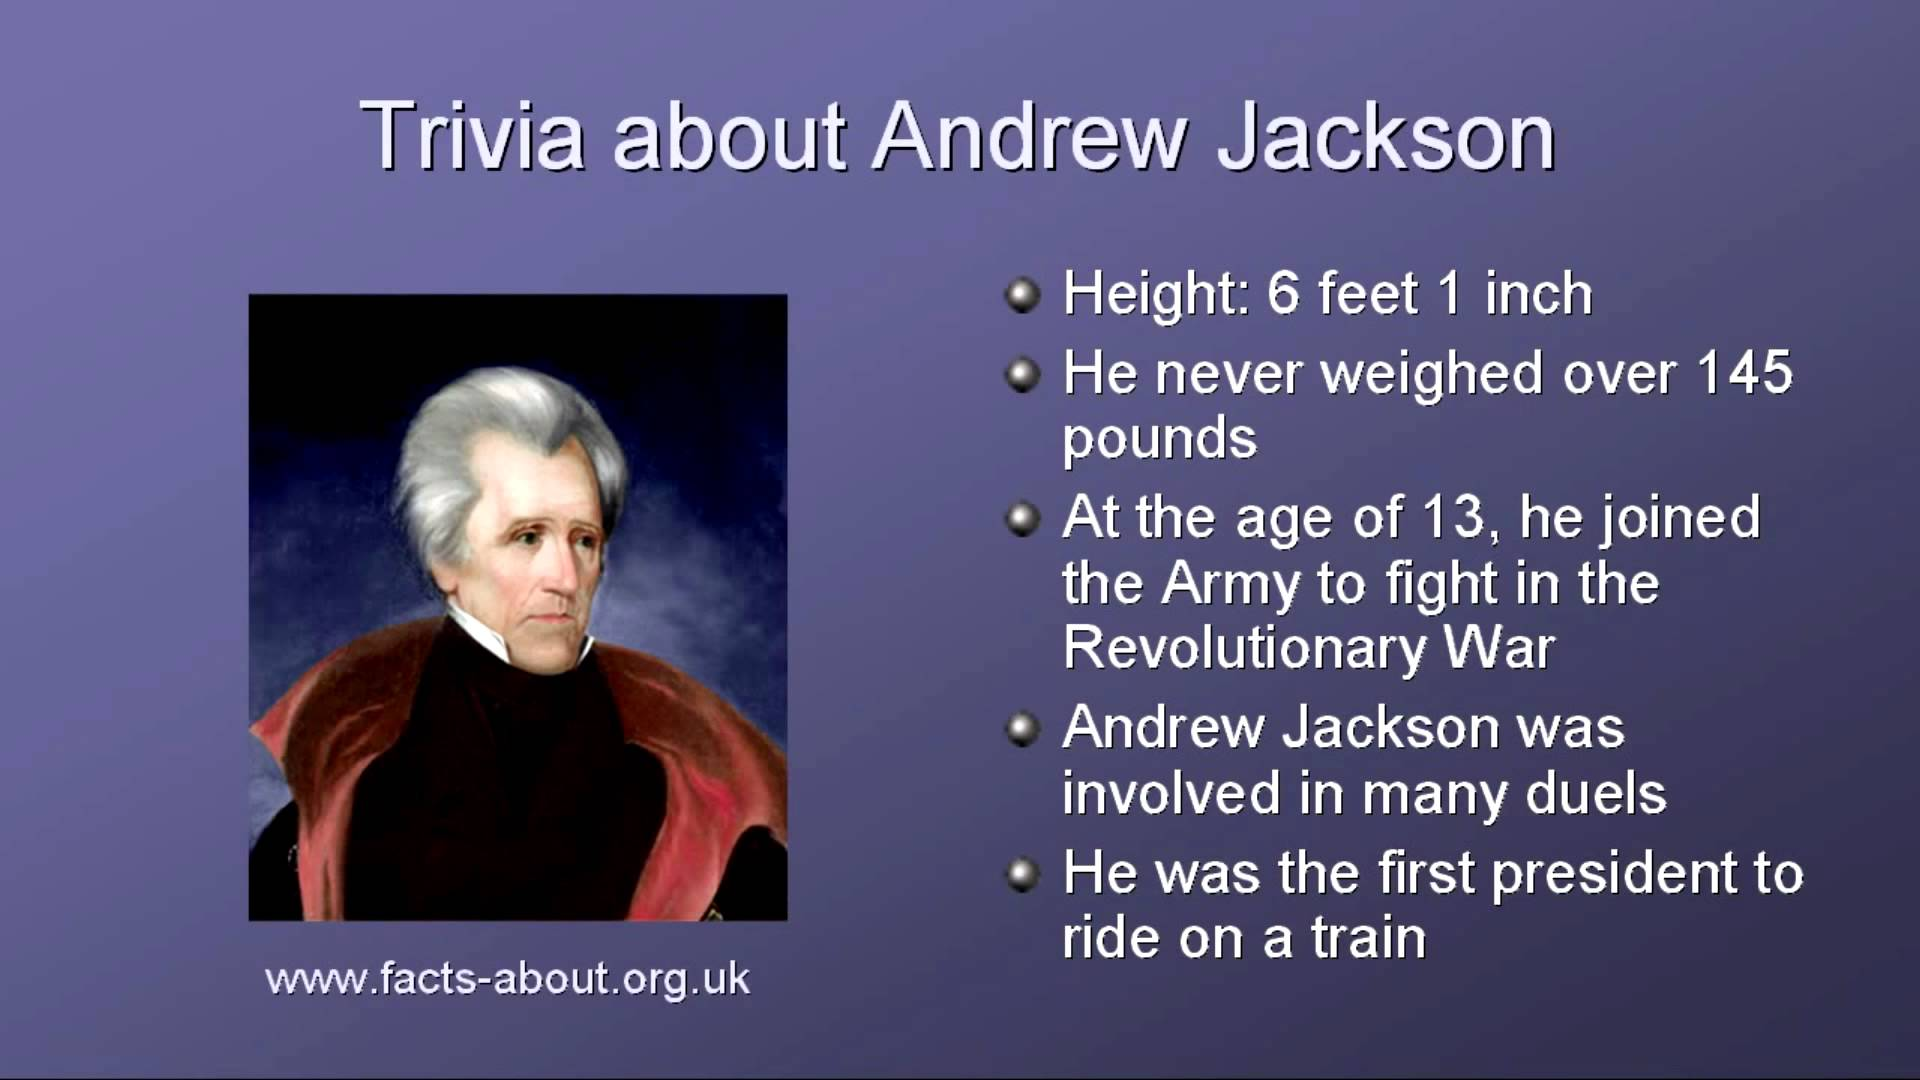 the life and political career of president andrew jackson of the united states In recent years, andrew jackson, america's controversial 7th president of the   of the important transitional political era that jackson's life and career spanned.